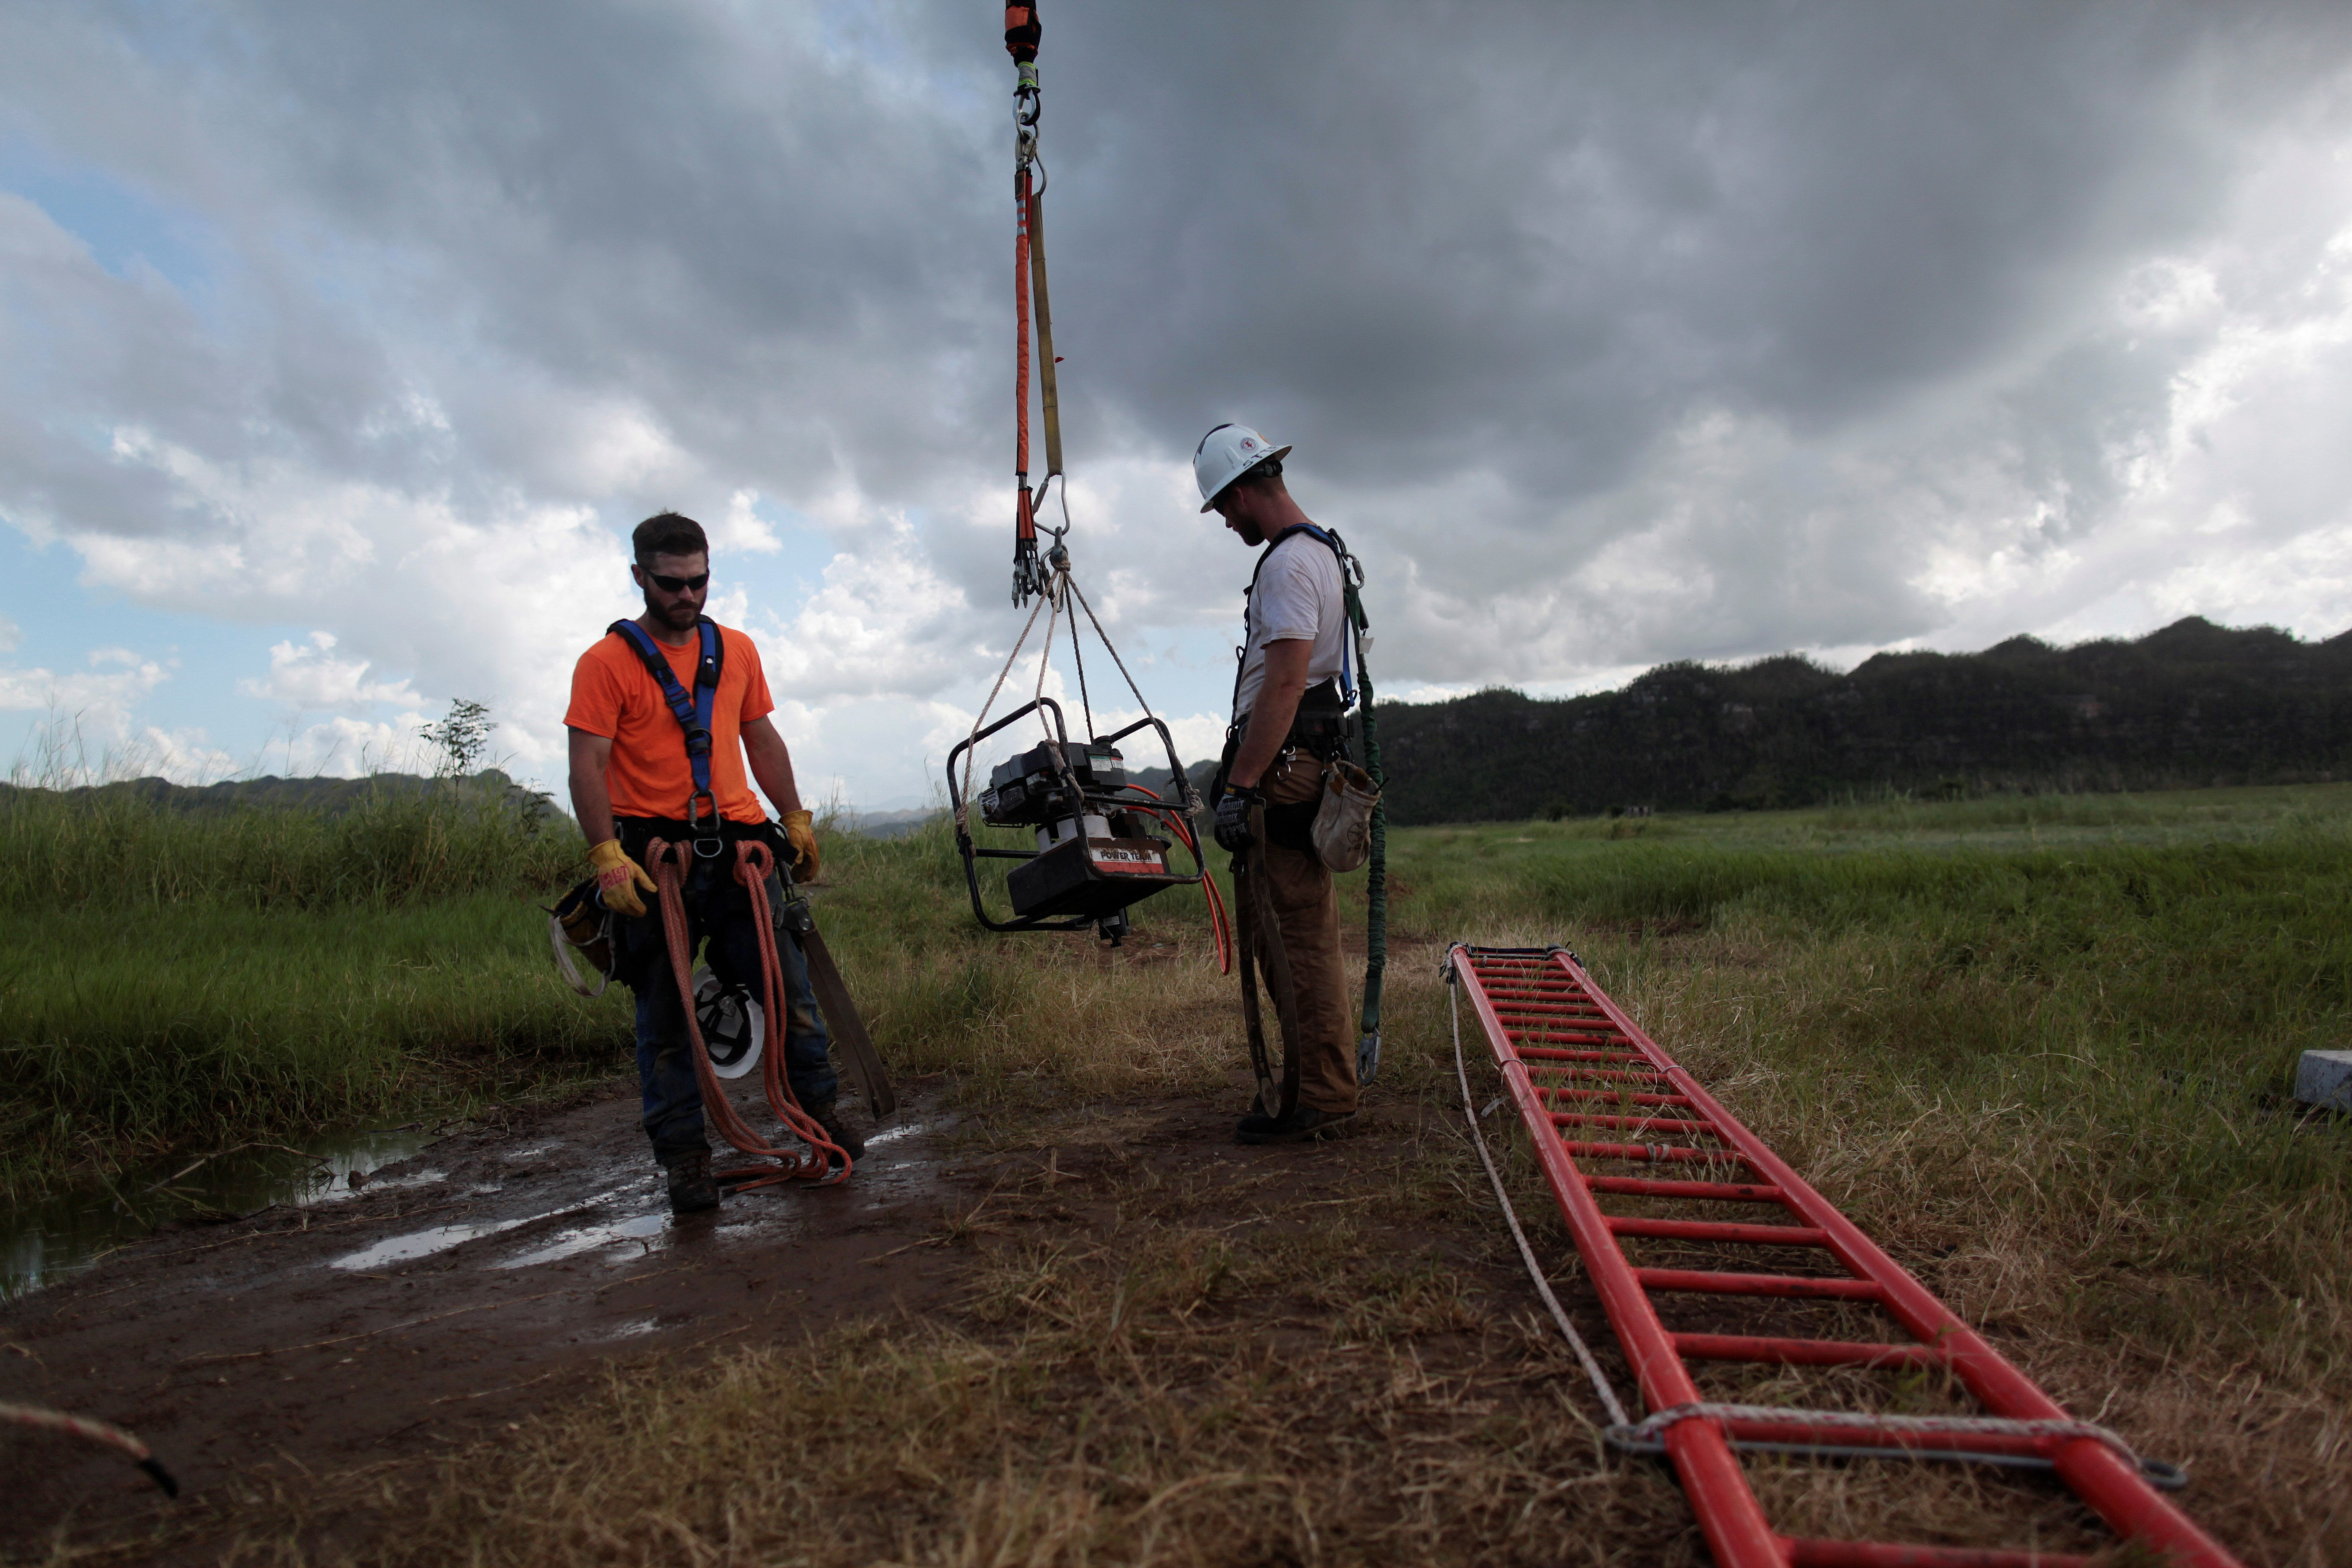 Workers from Montana-based Whitefish Energy Holdings help fix the island's power grid, damaged during Hurricane Maria in September, in Manati, Puerto Rico October 25, 2017.  REUTERS/Alvin Baez